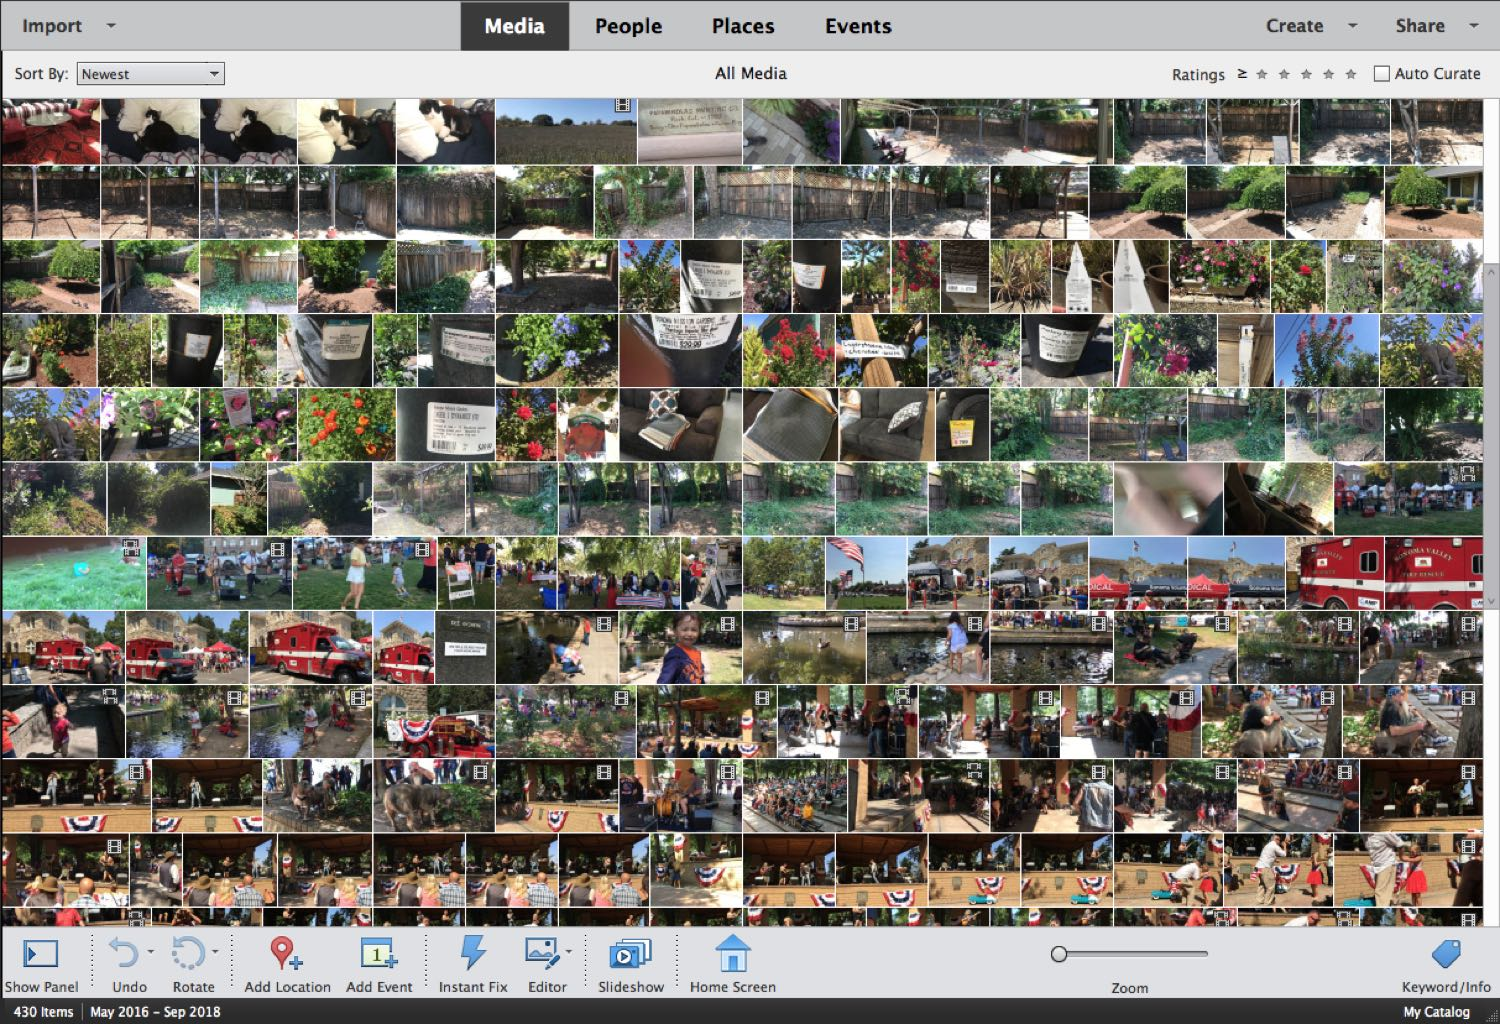 home Screen of the Adobe Photoshop Element